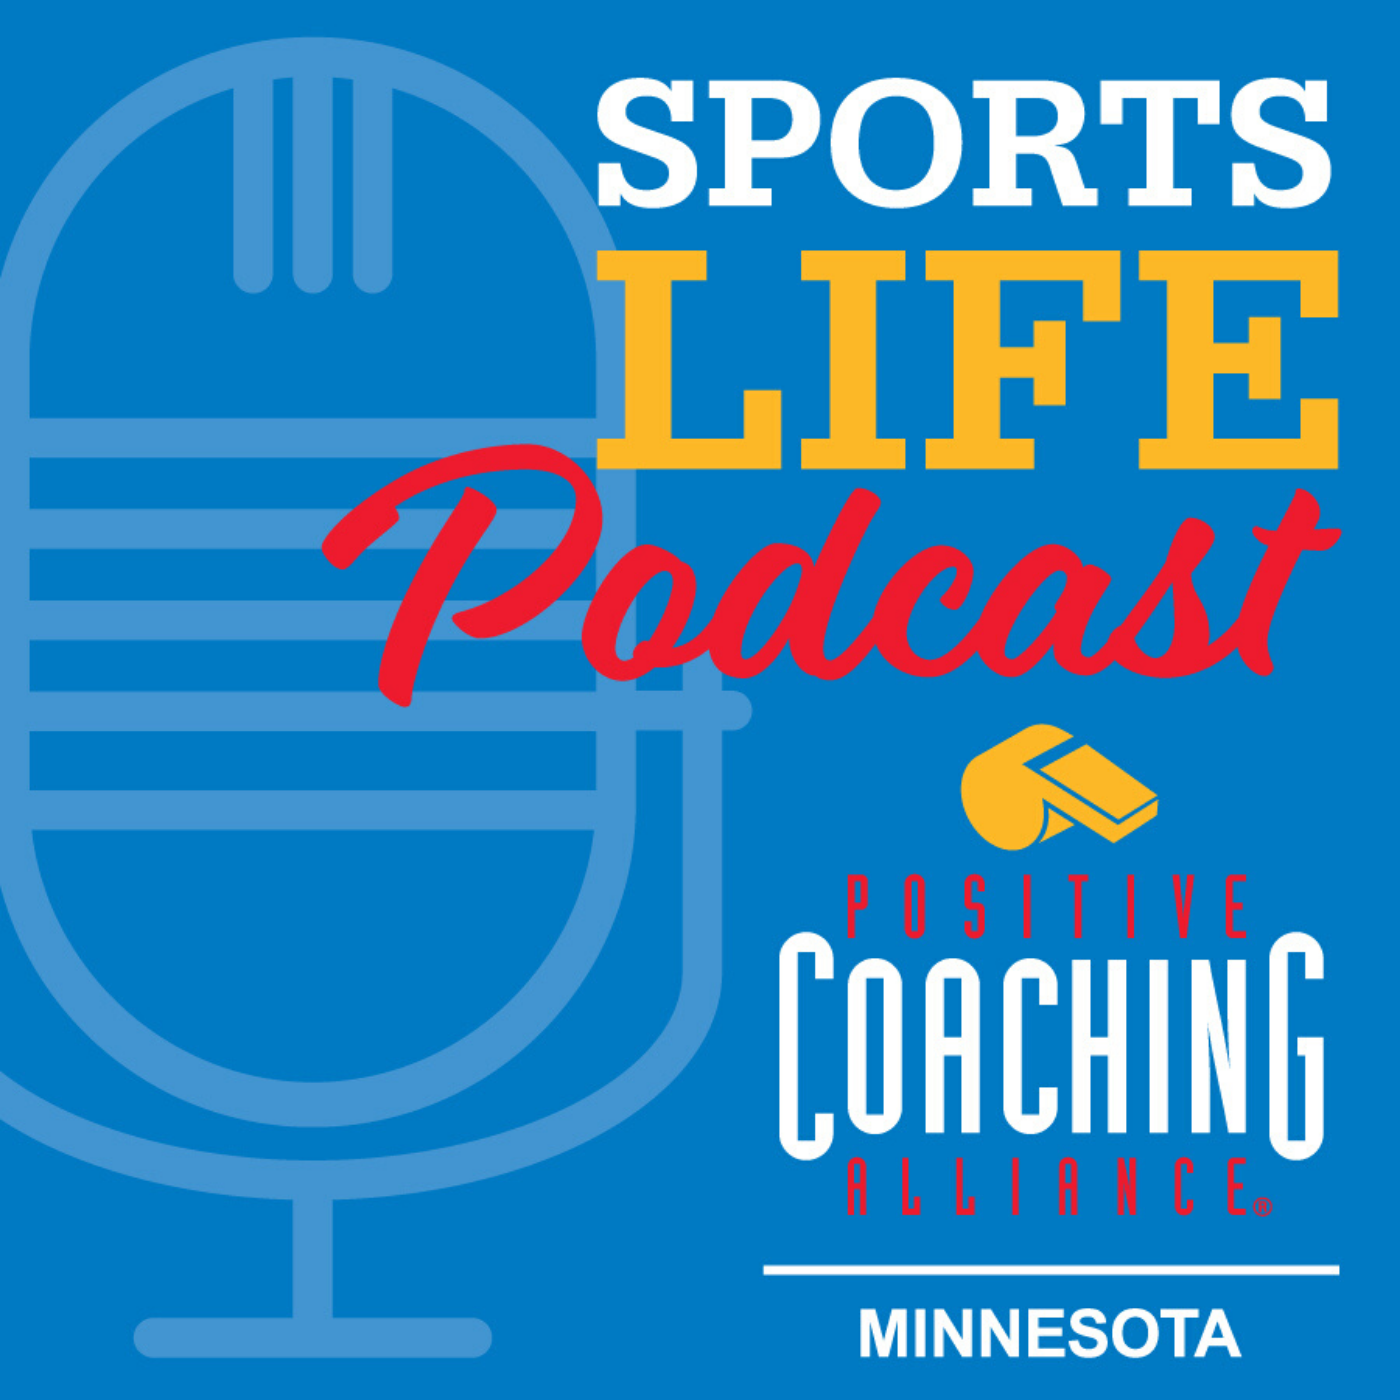 Ep 19: Gold Medal Winner Gwen Jorgensen On Olympic Training During a Pandemic